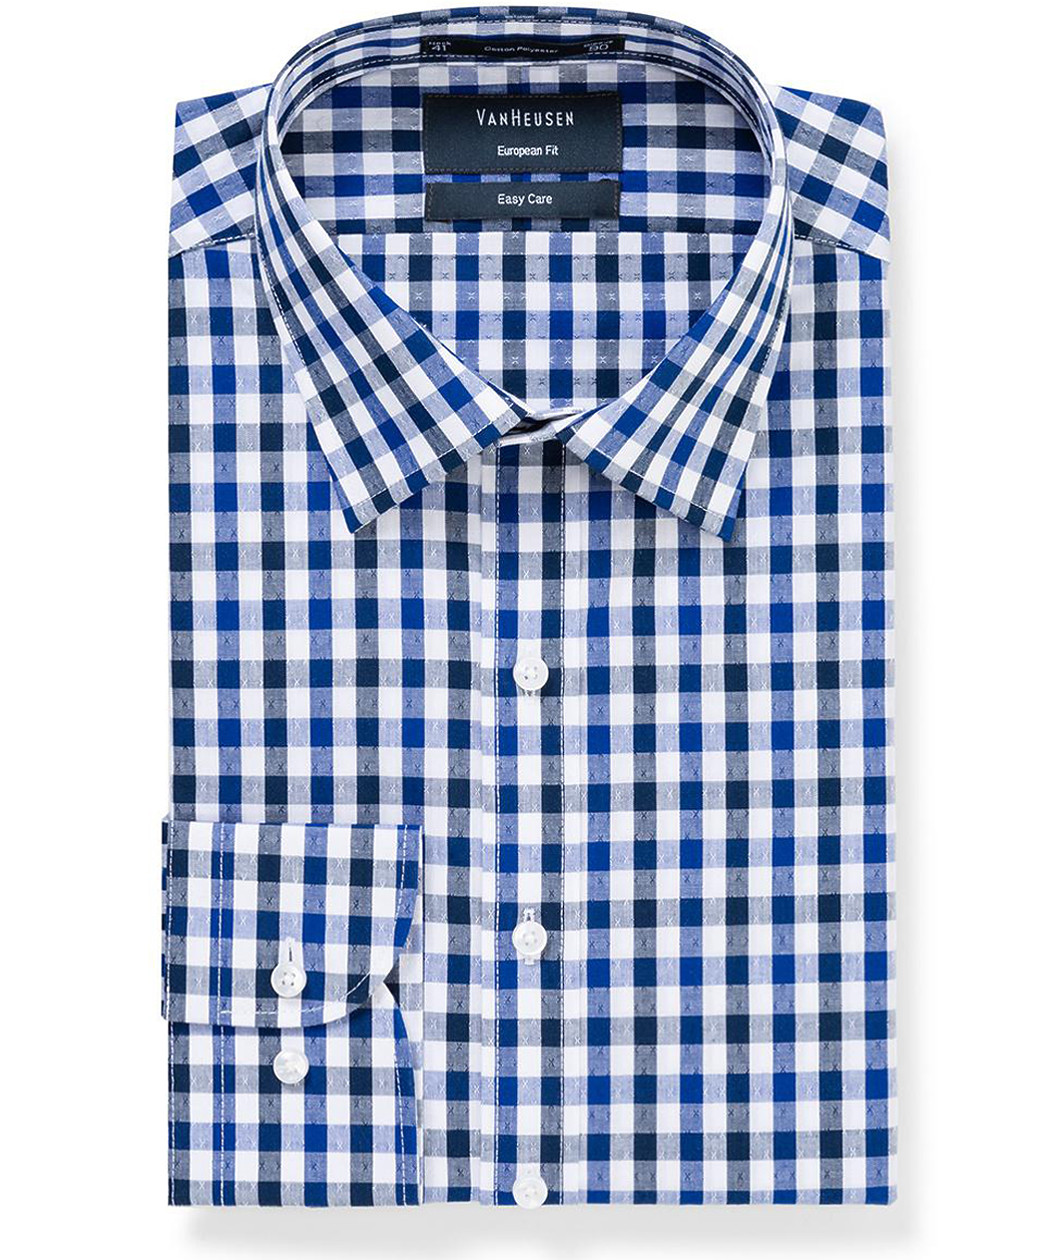 7c29902ec4f ... Mens Euro Fit Shirt Navy Large Check with Cross Design. Product Image ·  Image 1 ...